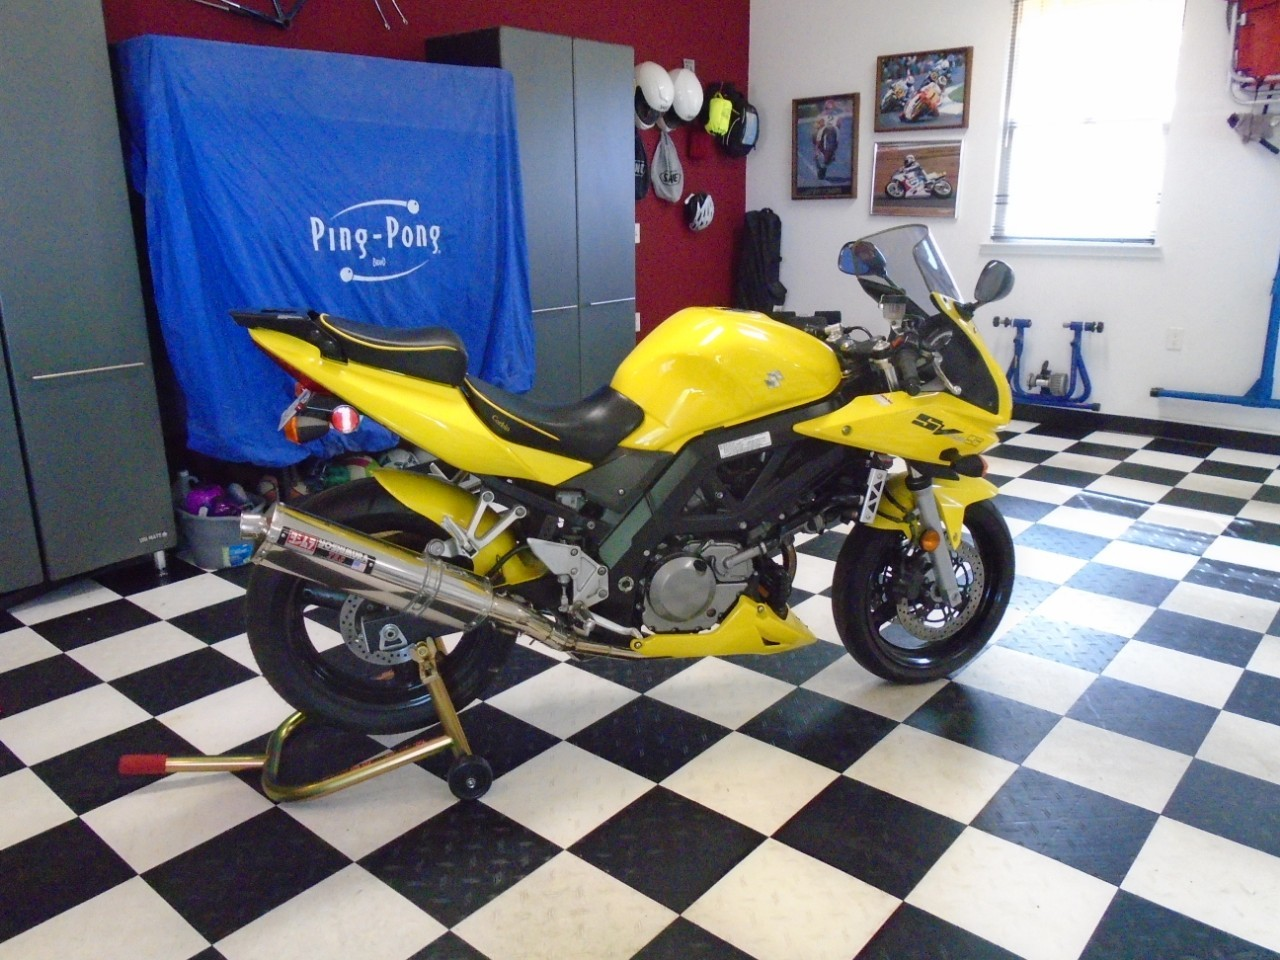 2 2005 SUZUKI SV 650 S Motorcycles For Sale - Cycle Trader Harley Ping Kuryakyn Wiring Harness on